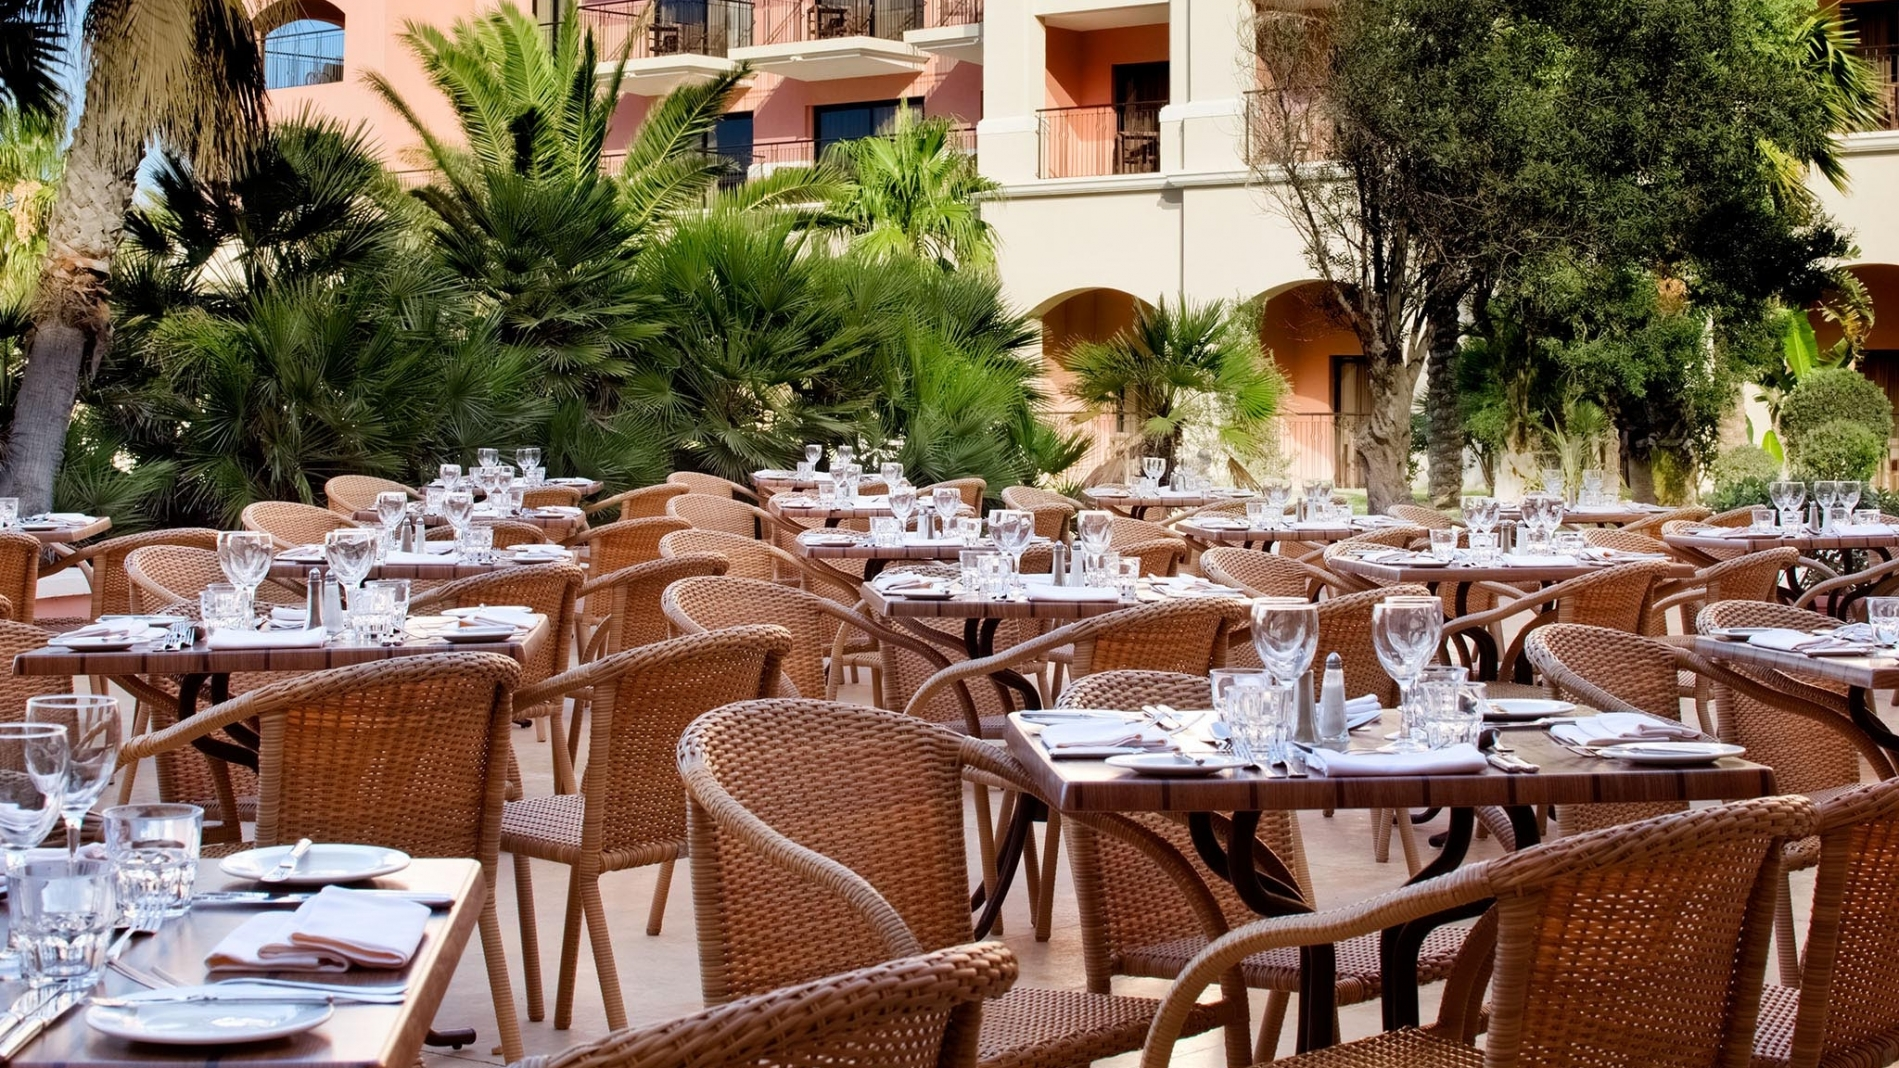 Terrace restaurant malta buffet restaurants in malta for Terrace restaurant menu